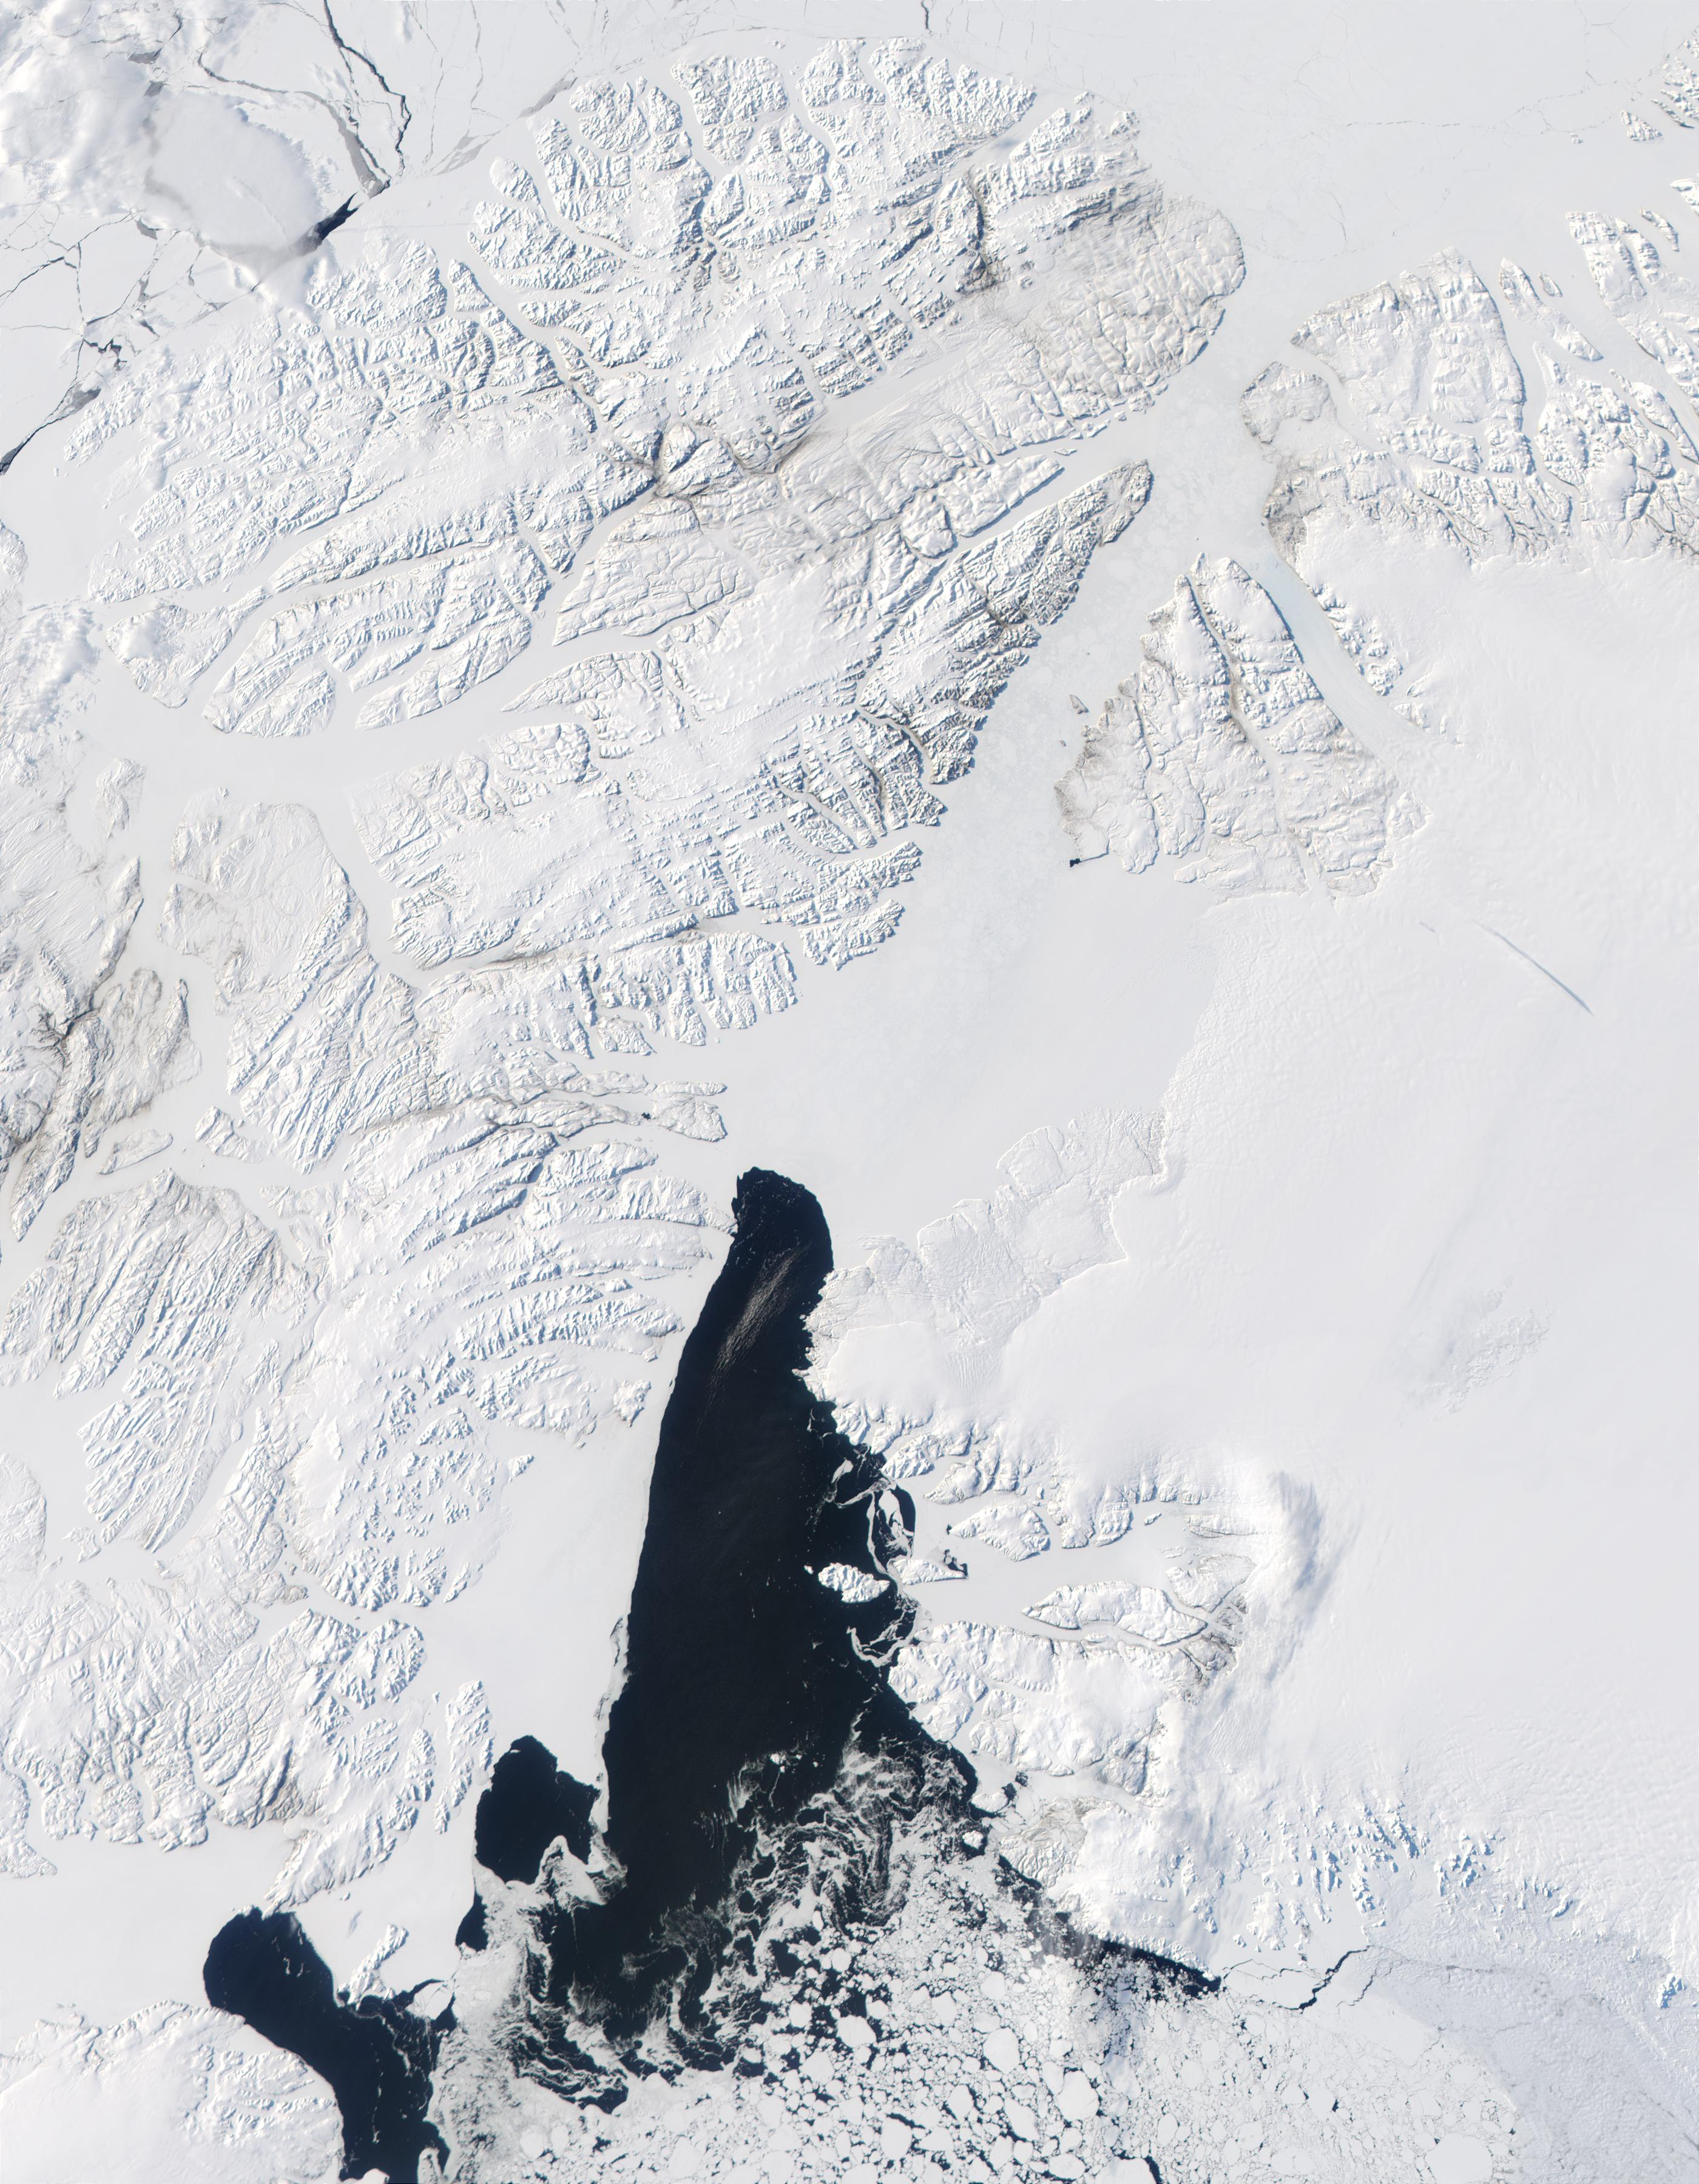 Queen Elizabeth Islands (Northern Canada), Northern coast of Greenland, and Baffin Bay - related image preview